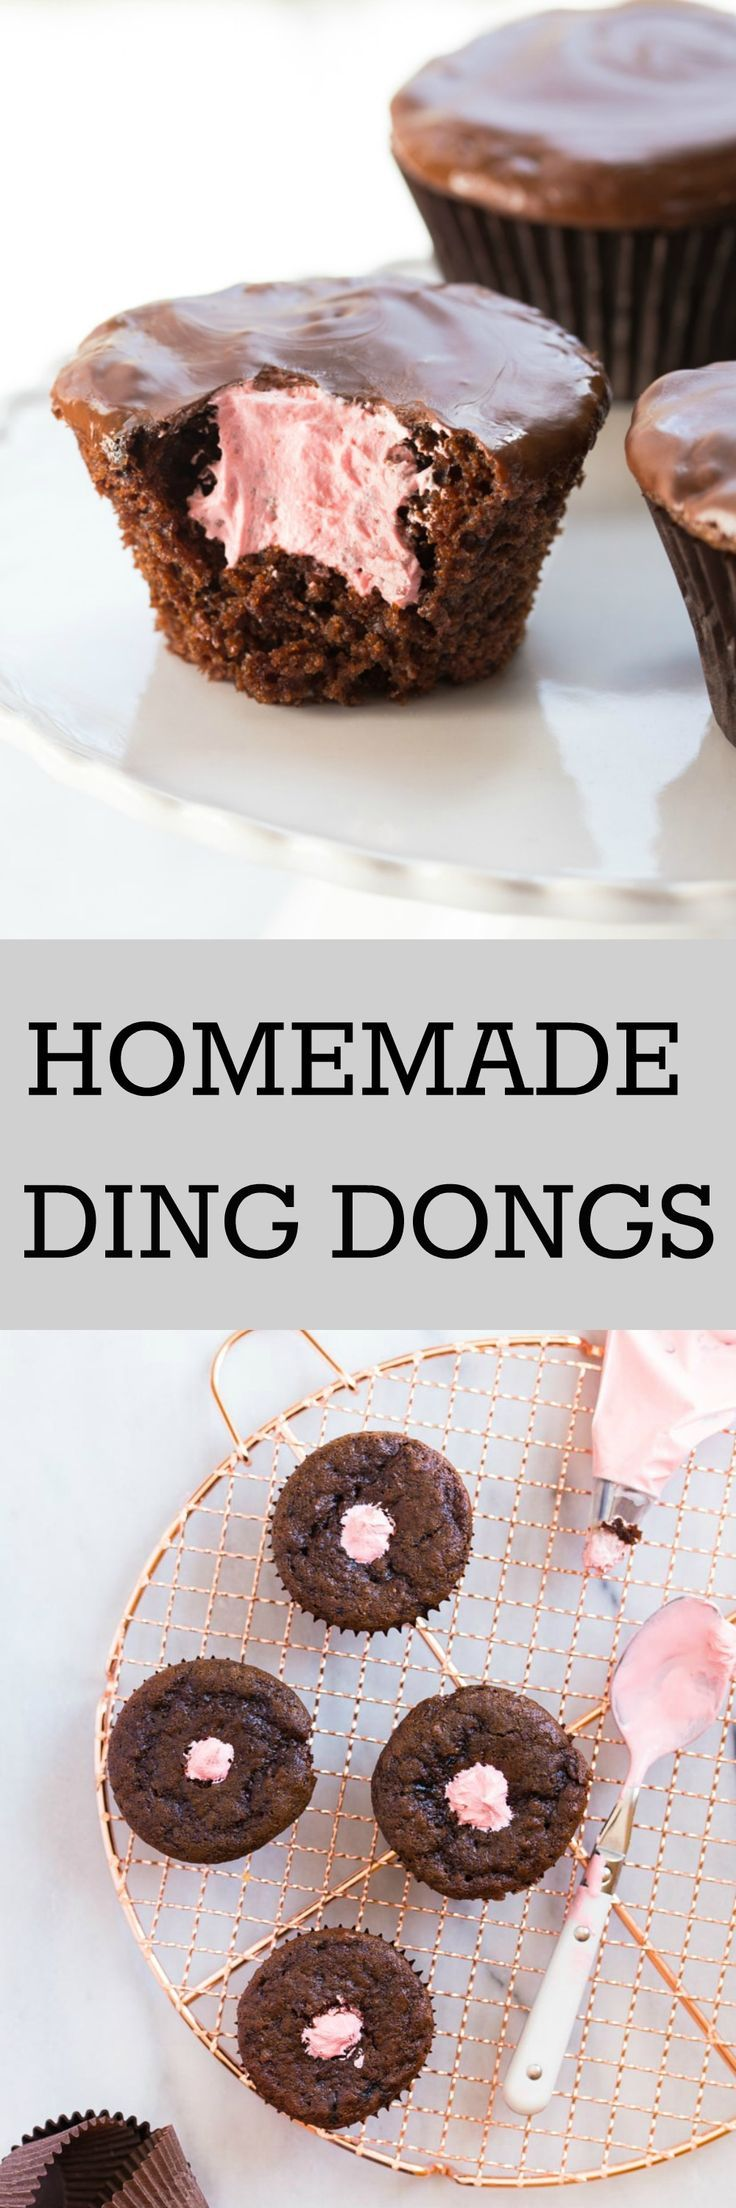 A small batch of chocolate cupcakes becomes homemade ding dongs with a bit of marshmallow fluff (any flavor!) and easy melted chocolate frosting @DessertForTwo